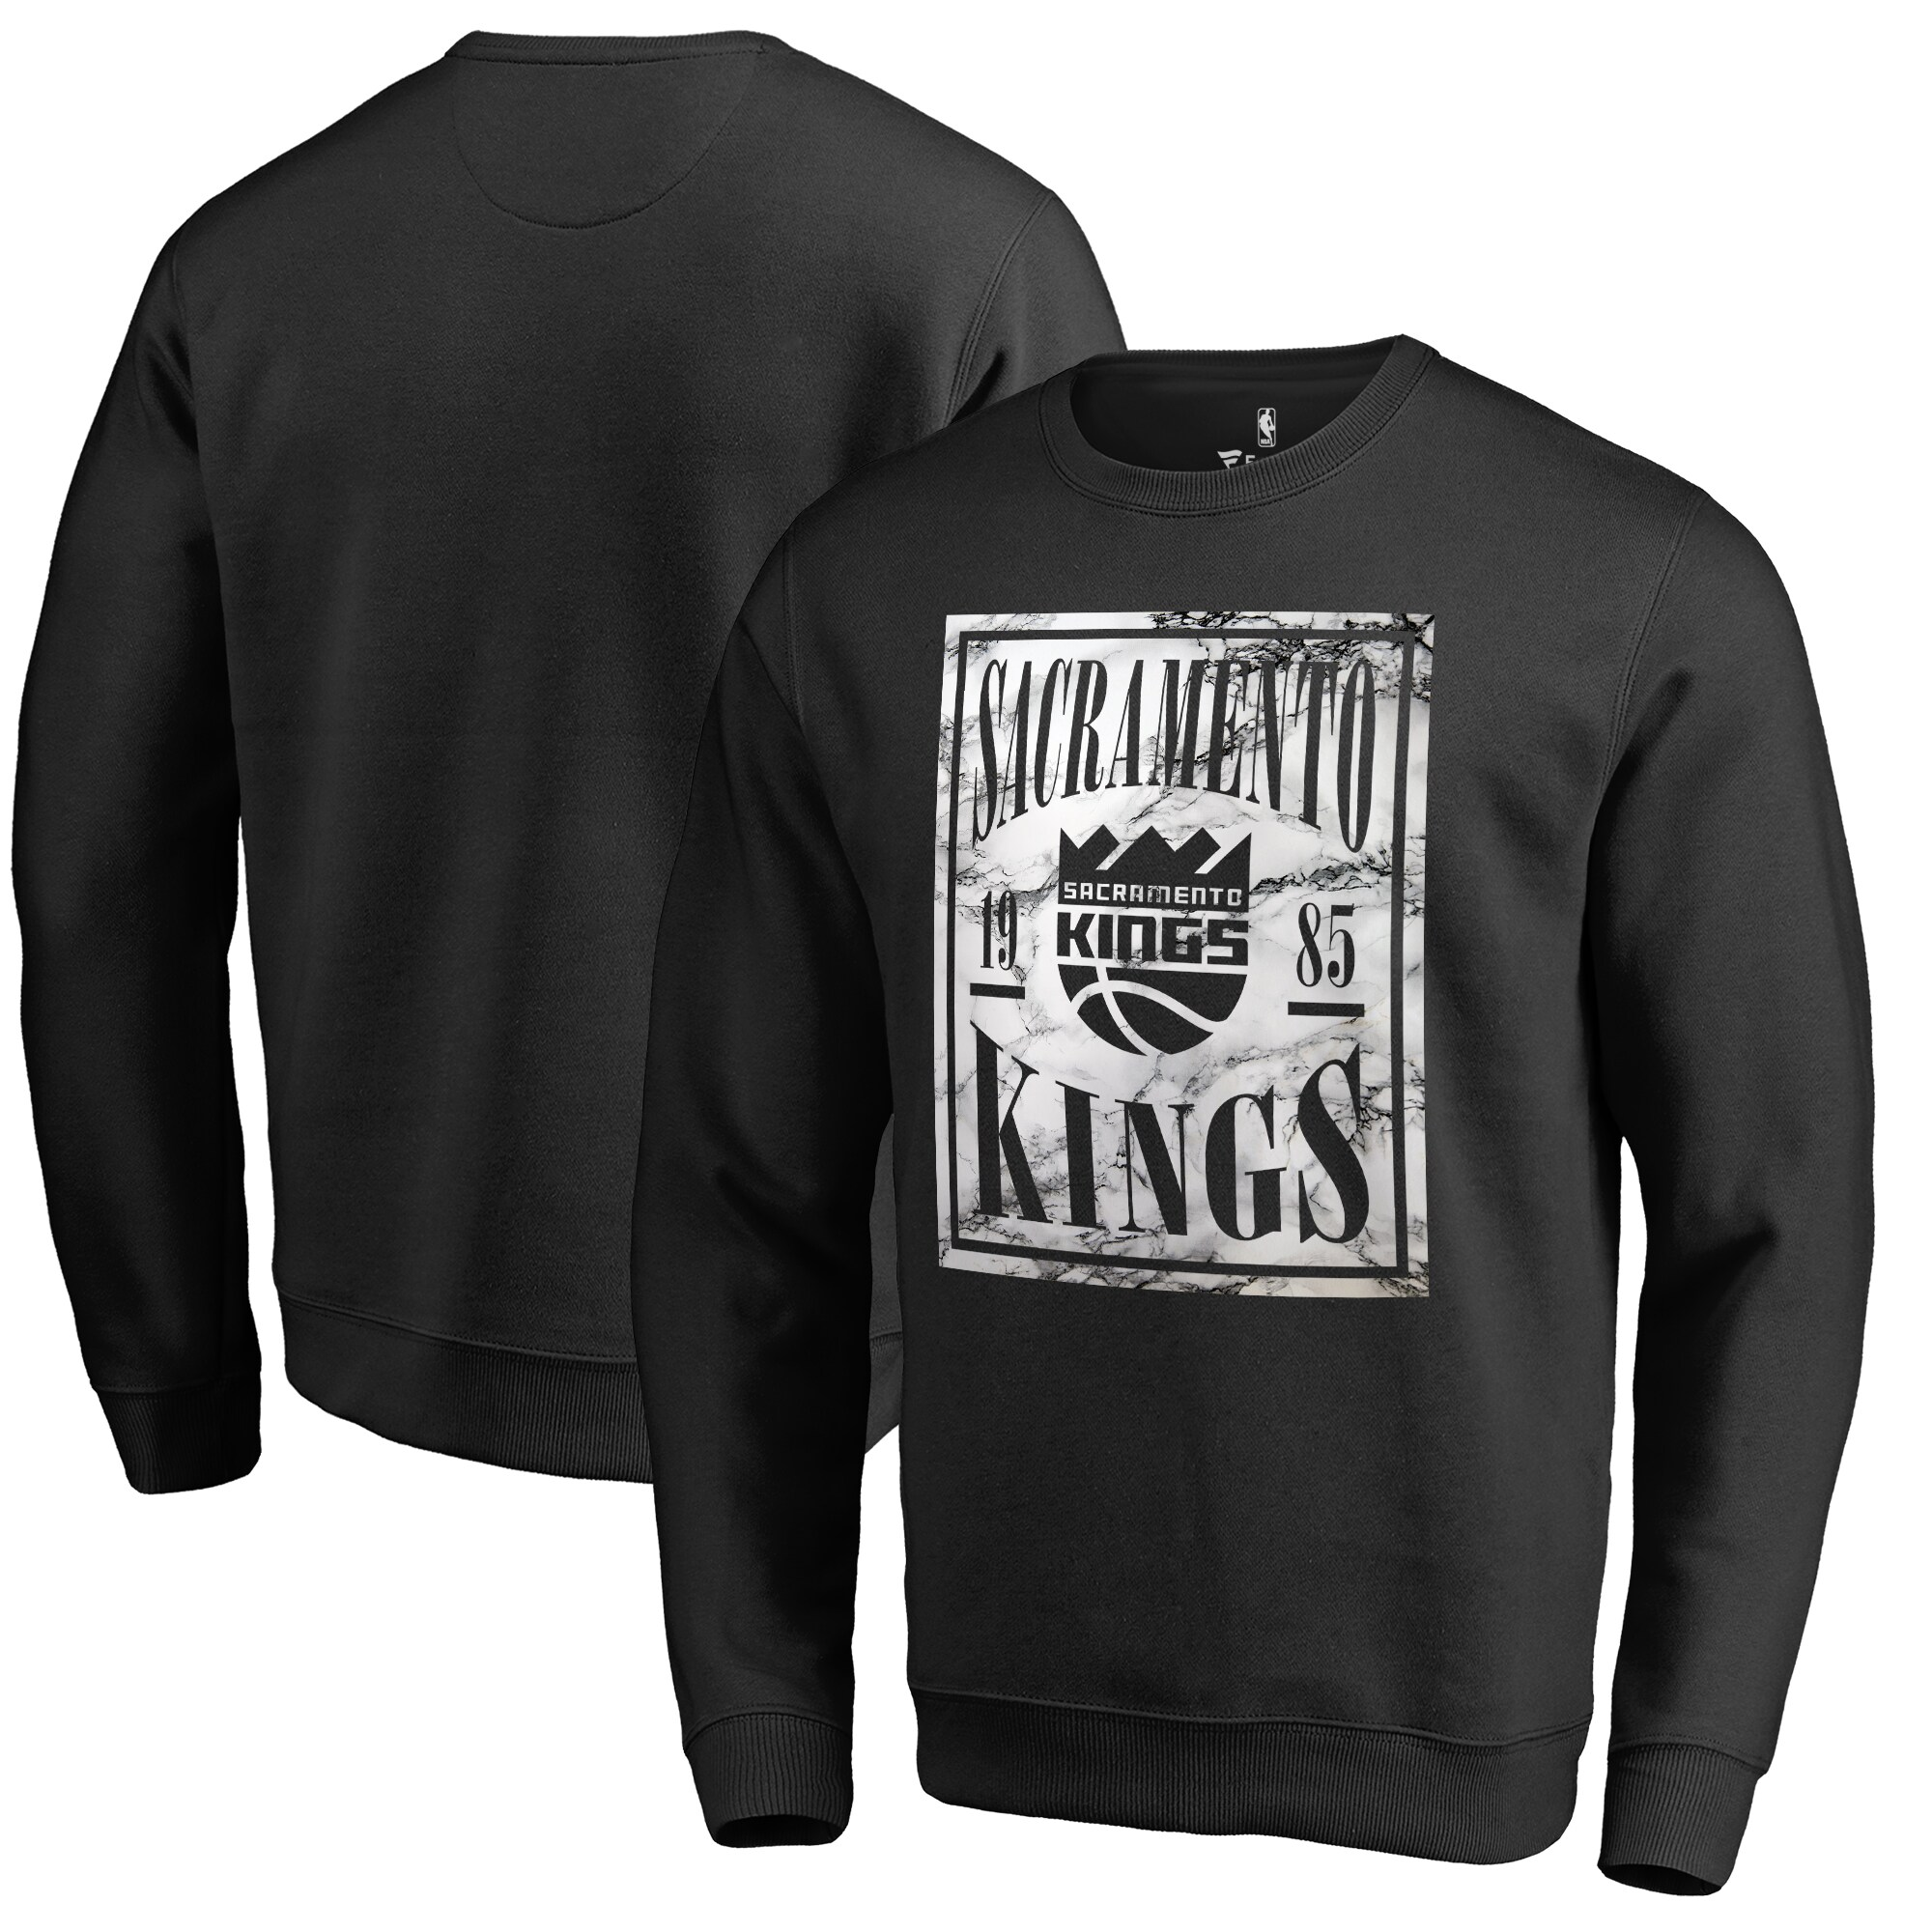 Sacramento Kings Fanatics Branded Court Vision Crew Sweatshirt - Black